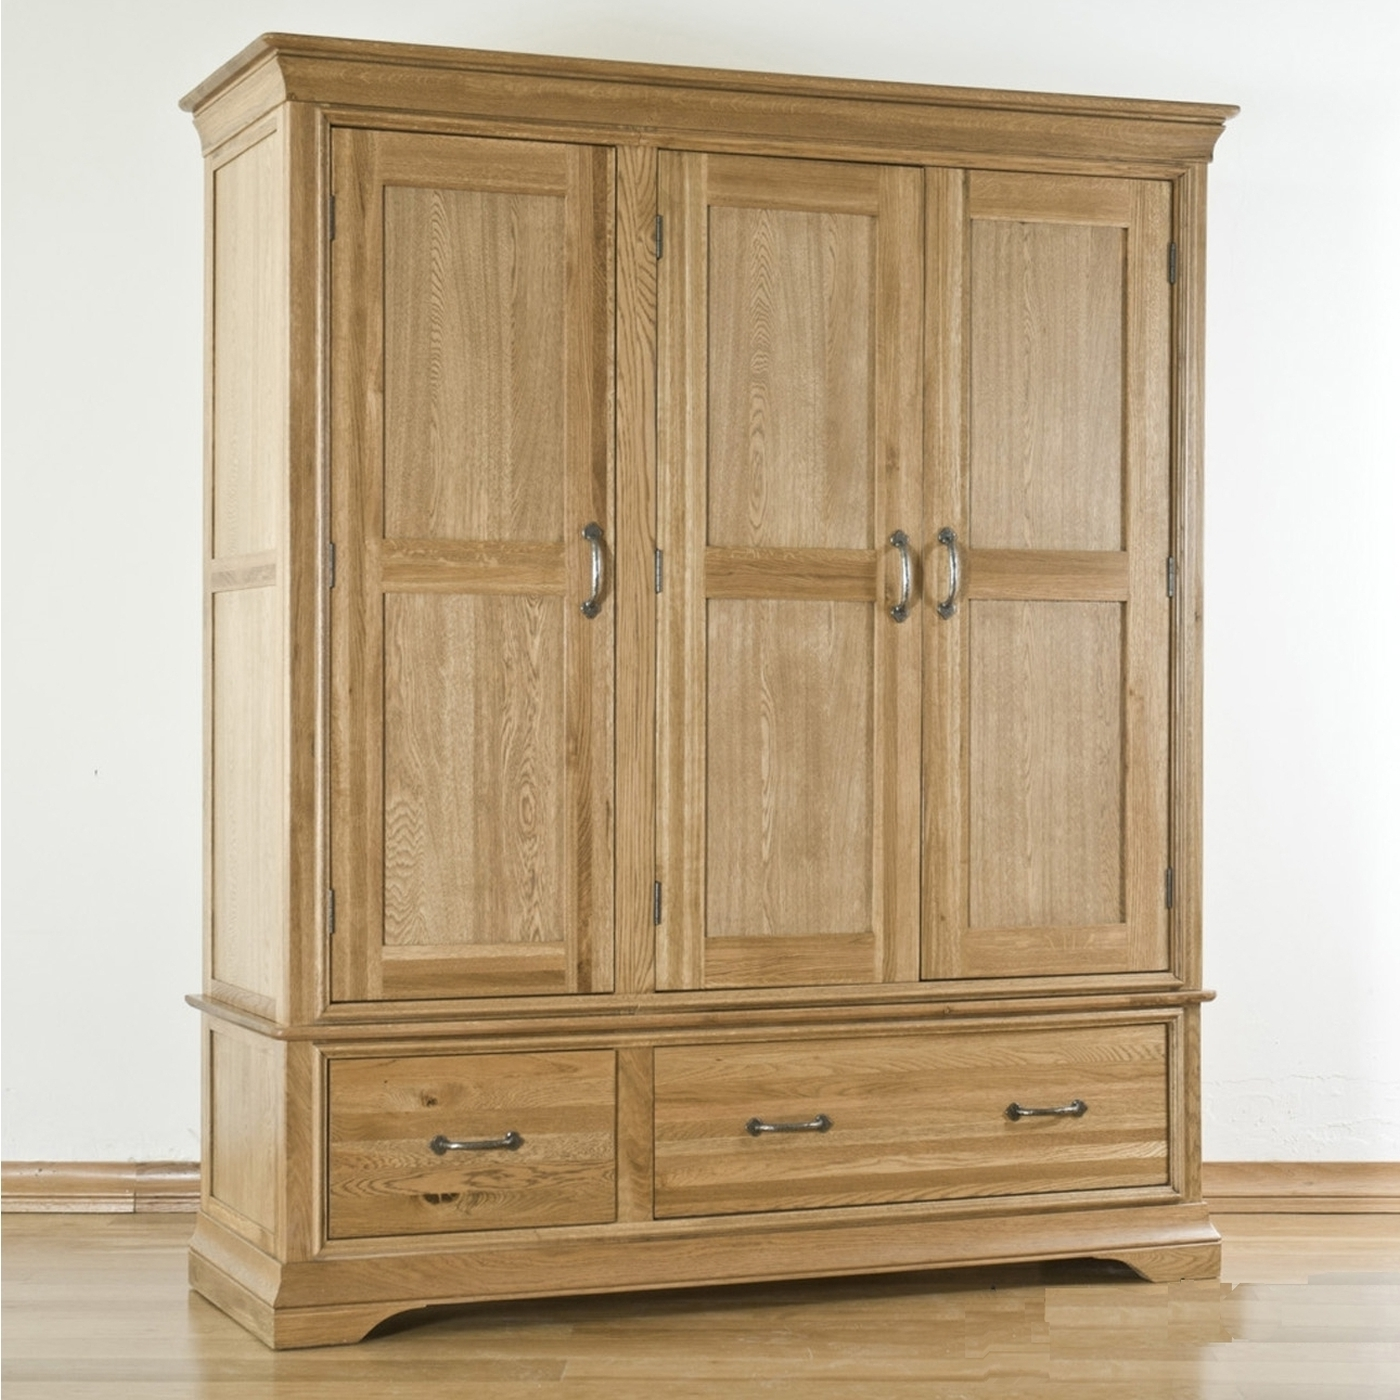 Large Oak Wardrobes Regarding Popular Toulon Solid Oak Furniture Triple Bedroom Large Storage Wardrobe (View 9 of 15)